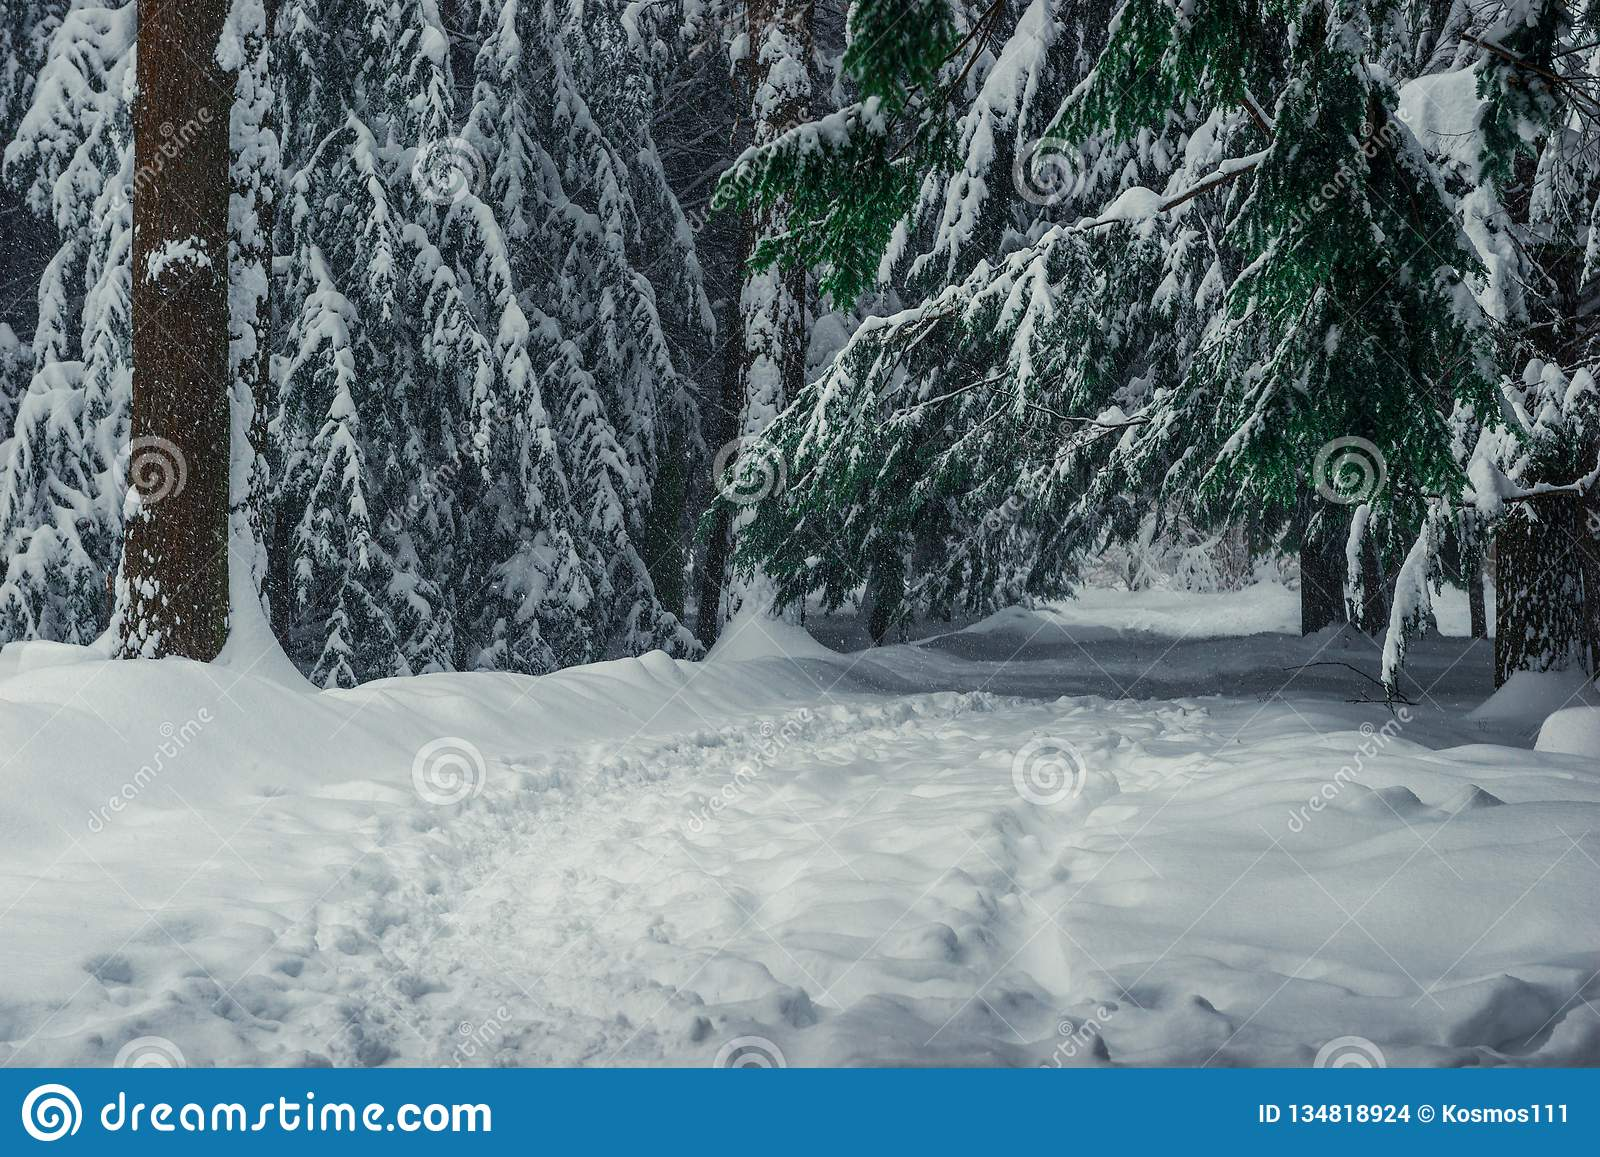 Branches of tall fir trees in the snow